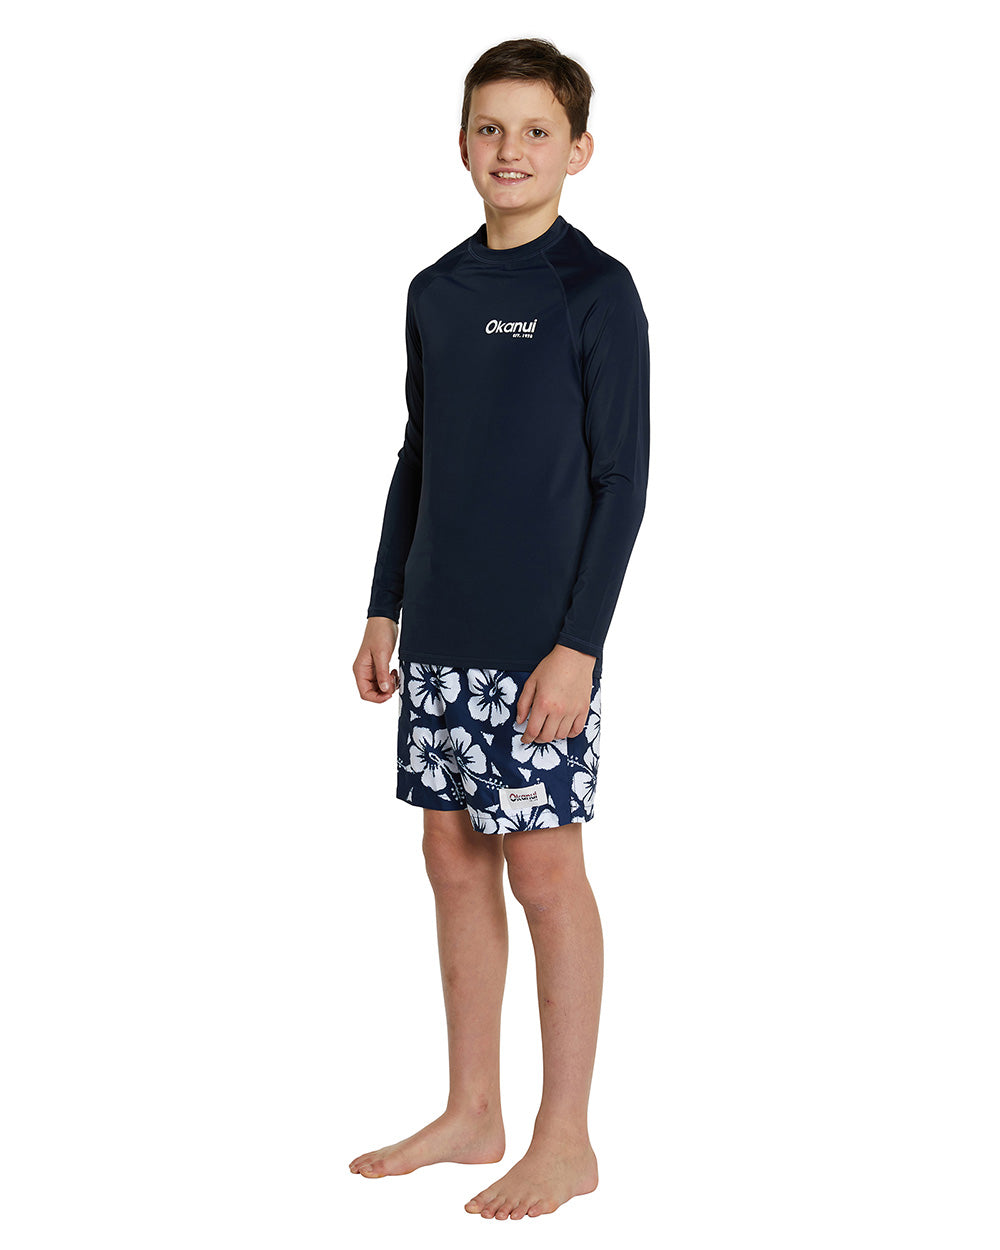 Kids Long Sleeve Rashie - Navy Logo Rash shirt